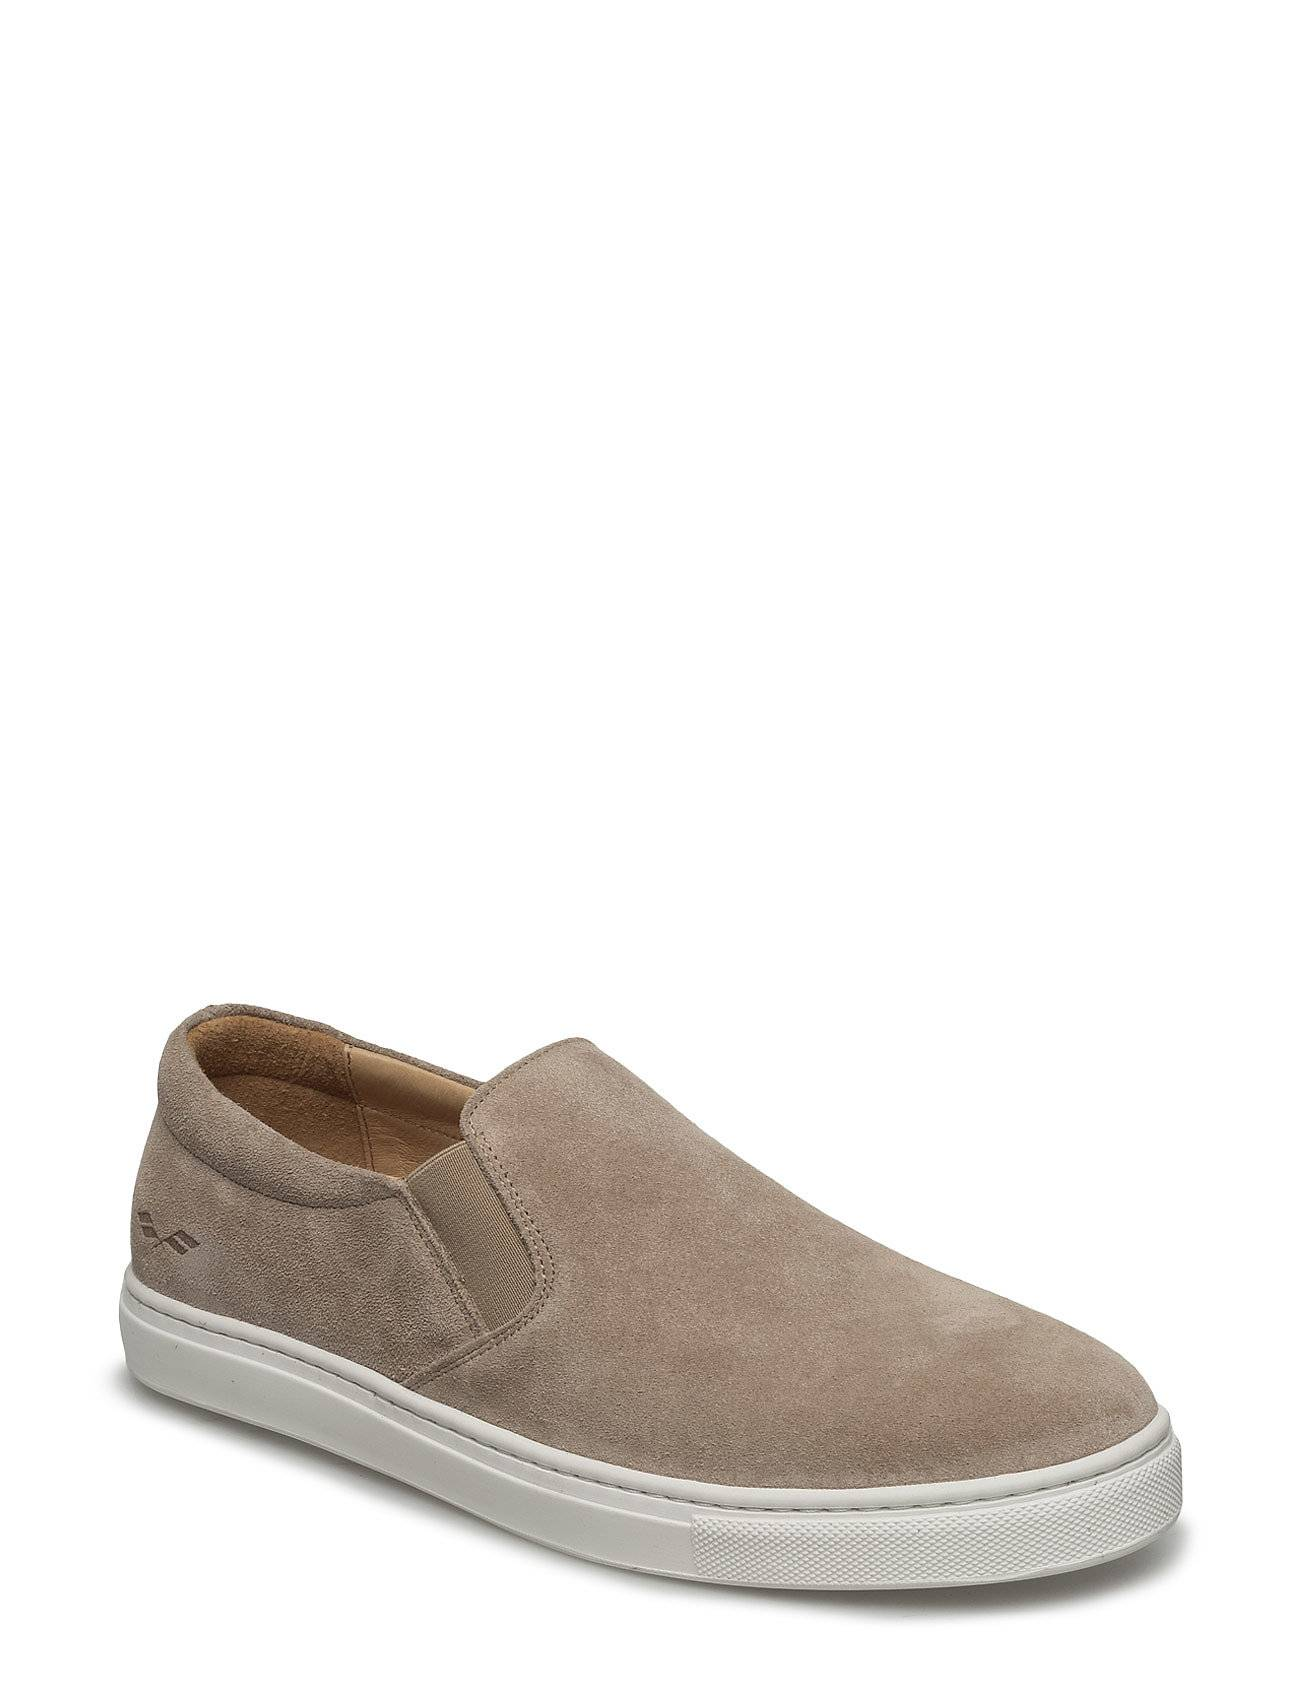 Selected Homme Ab Slipon